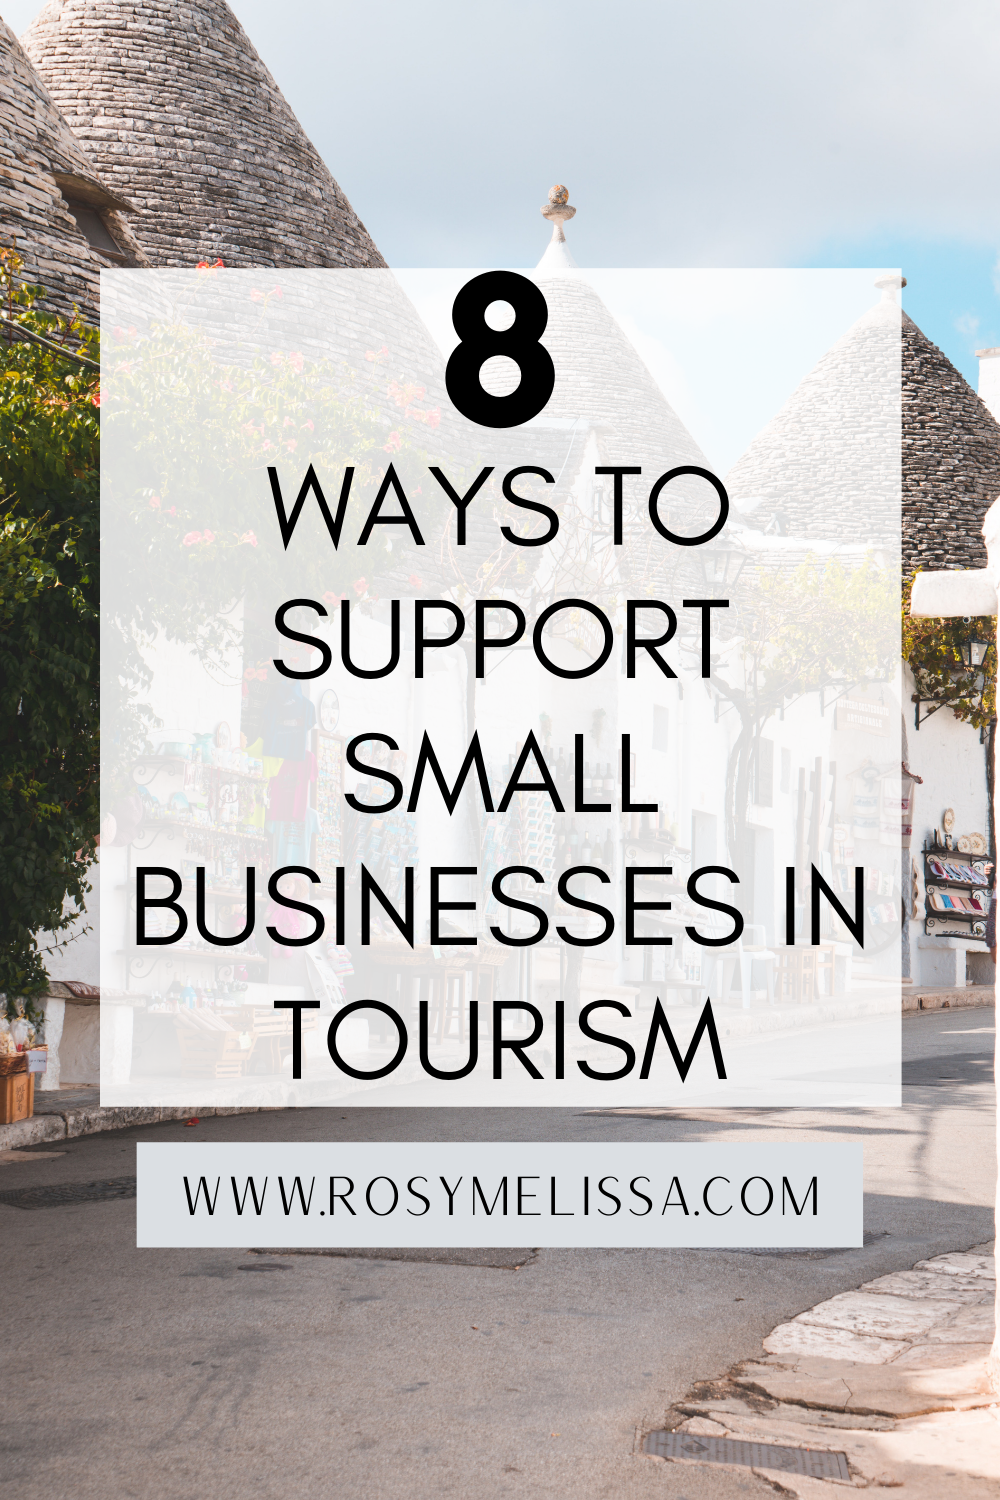 how to support small businesses in tourism, local businesses in travel, travel industry